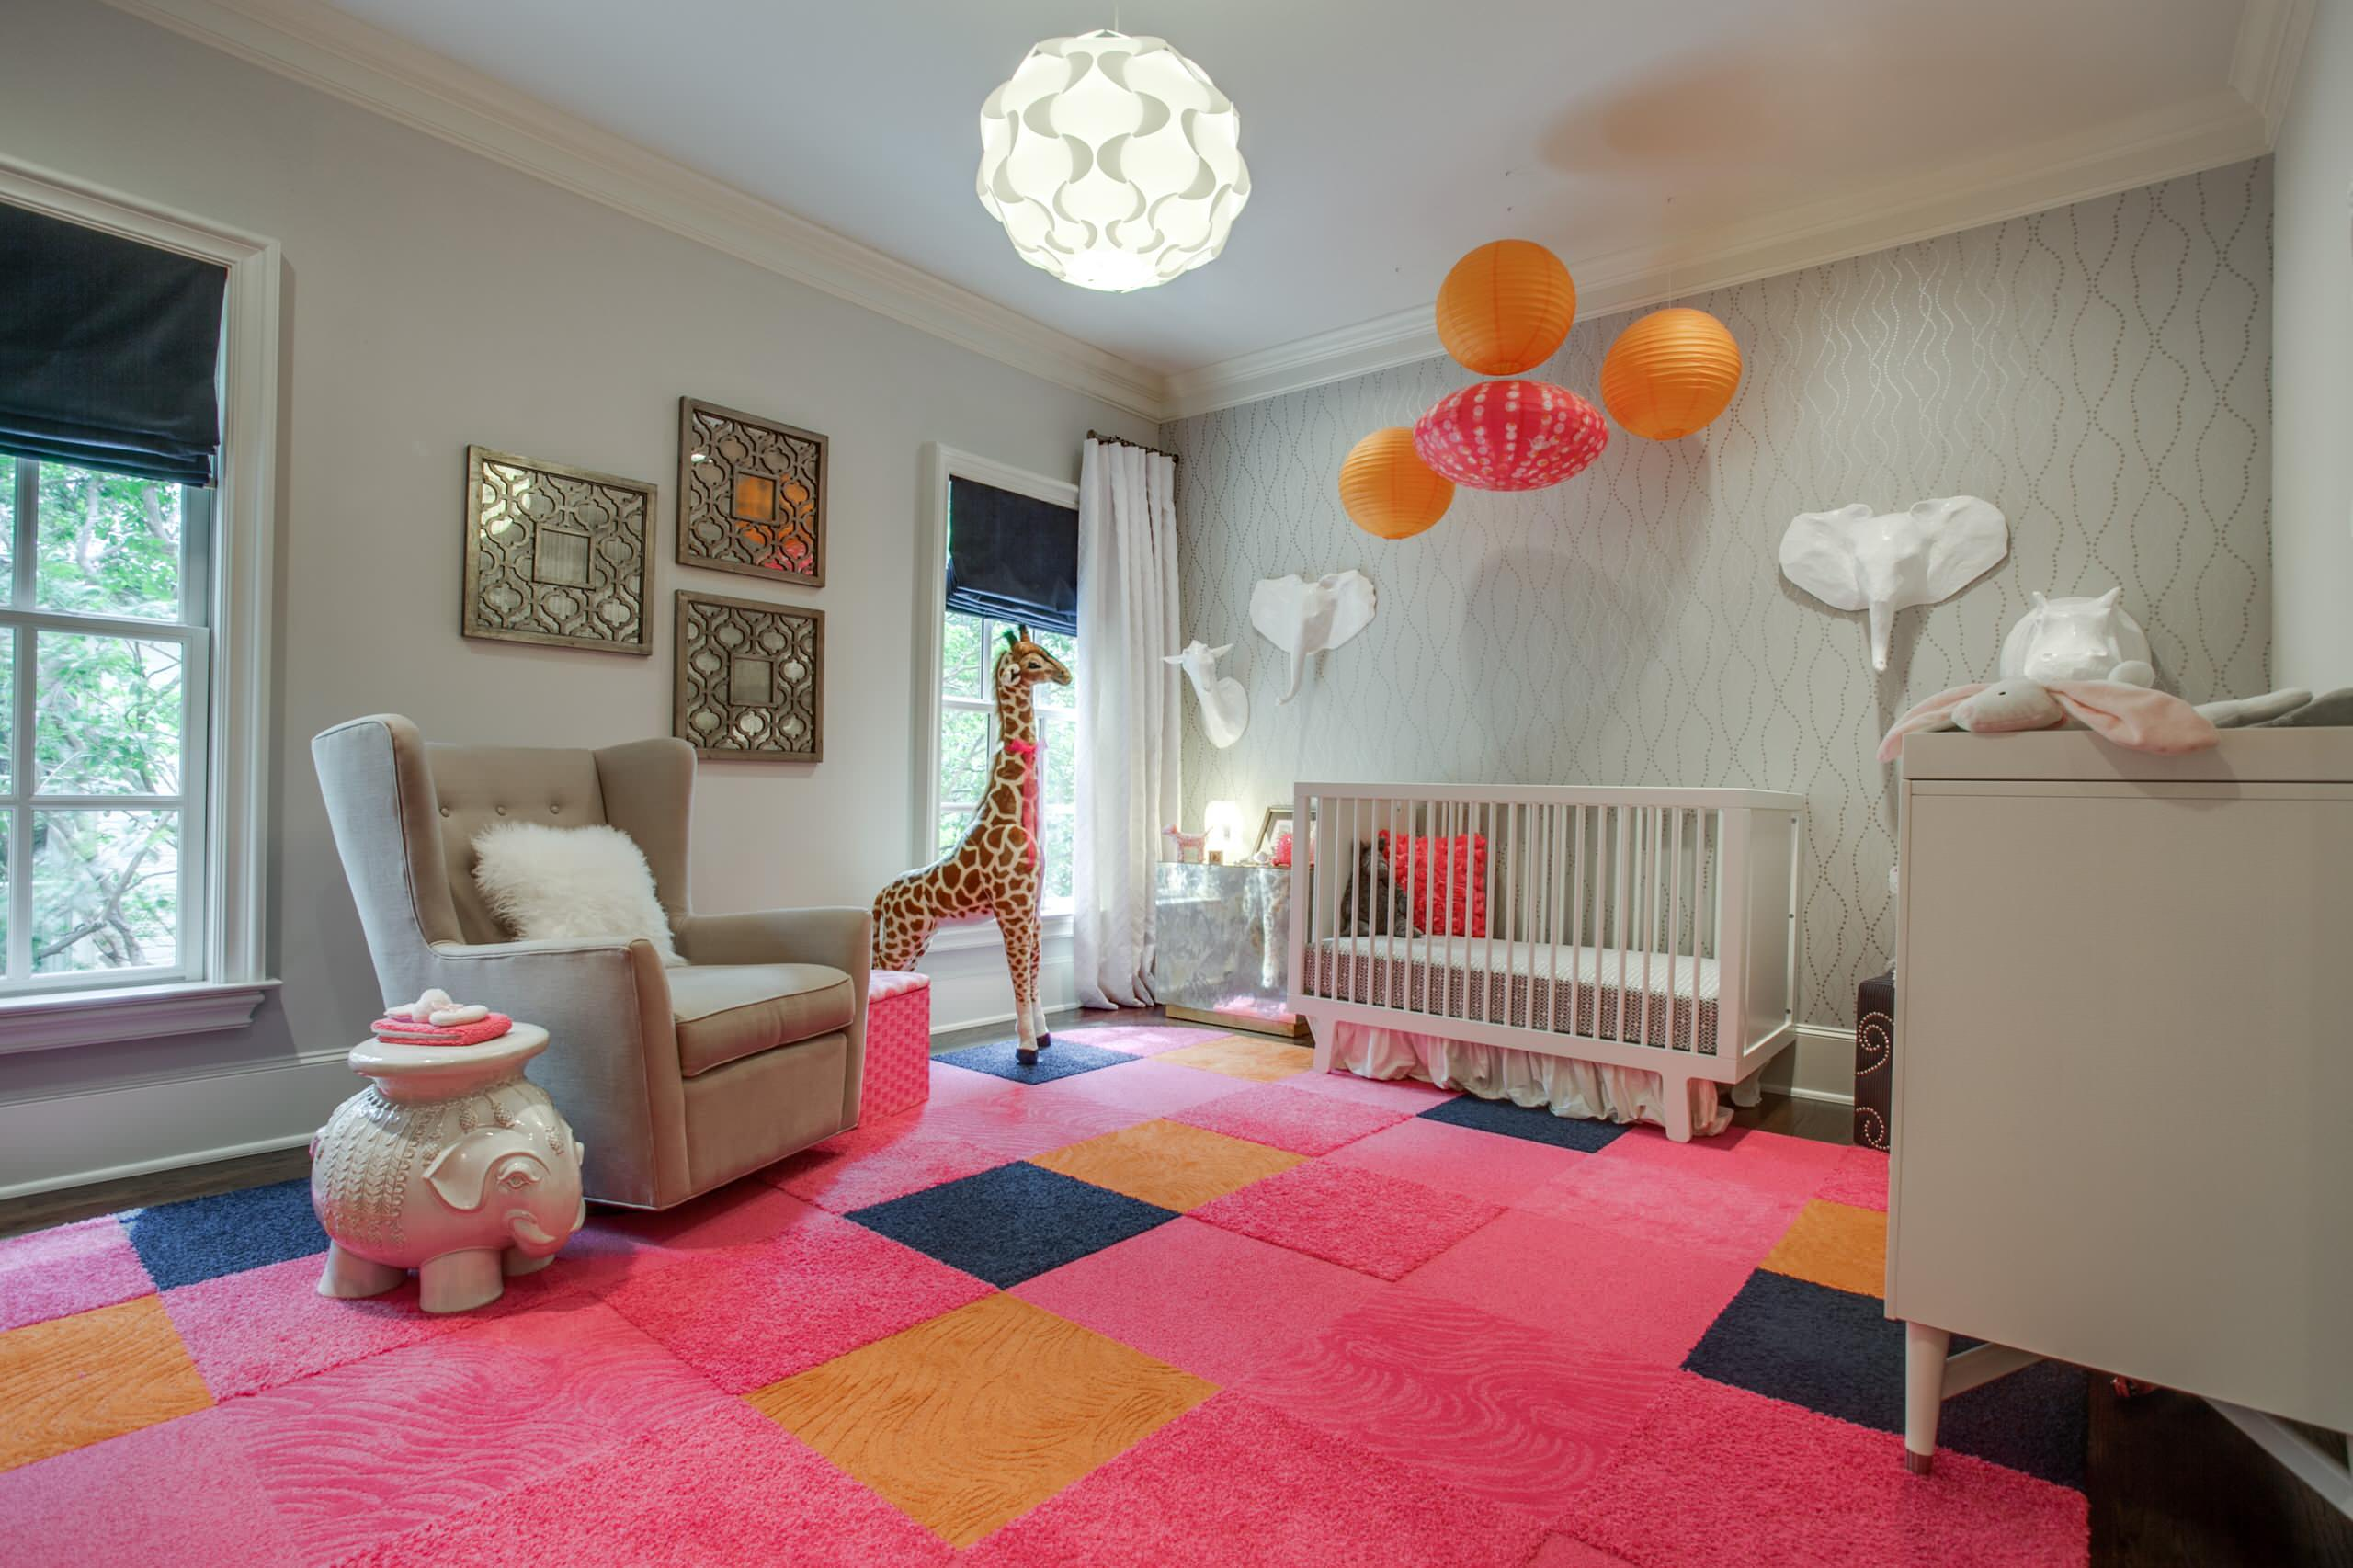 Patchwork-style-floor-replaces-the-classic-rug-in-this-gorgeous-girls-nursery-14358